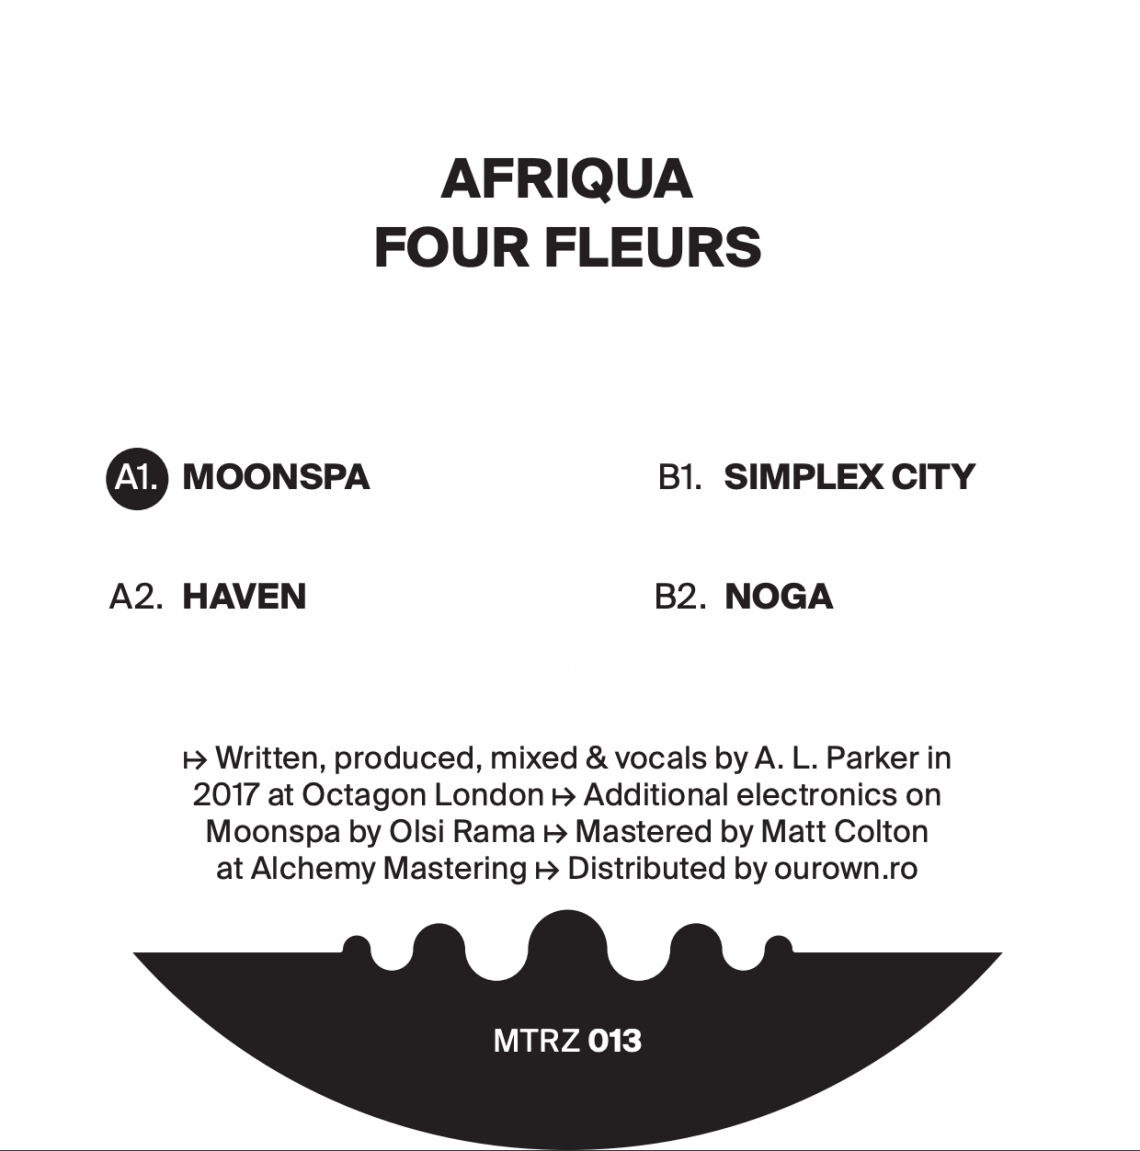 Metereze presents Four Fleurs EP, the long awaited debut of Afriqua on Raresh's imprint